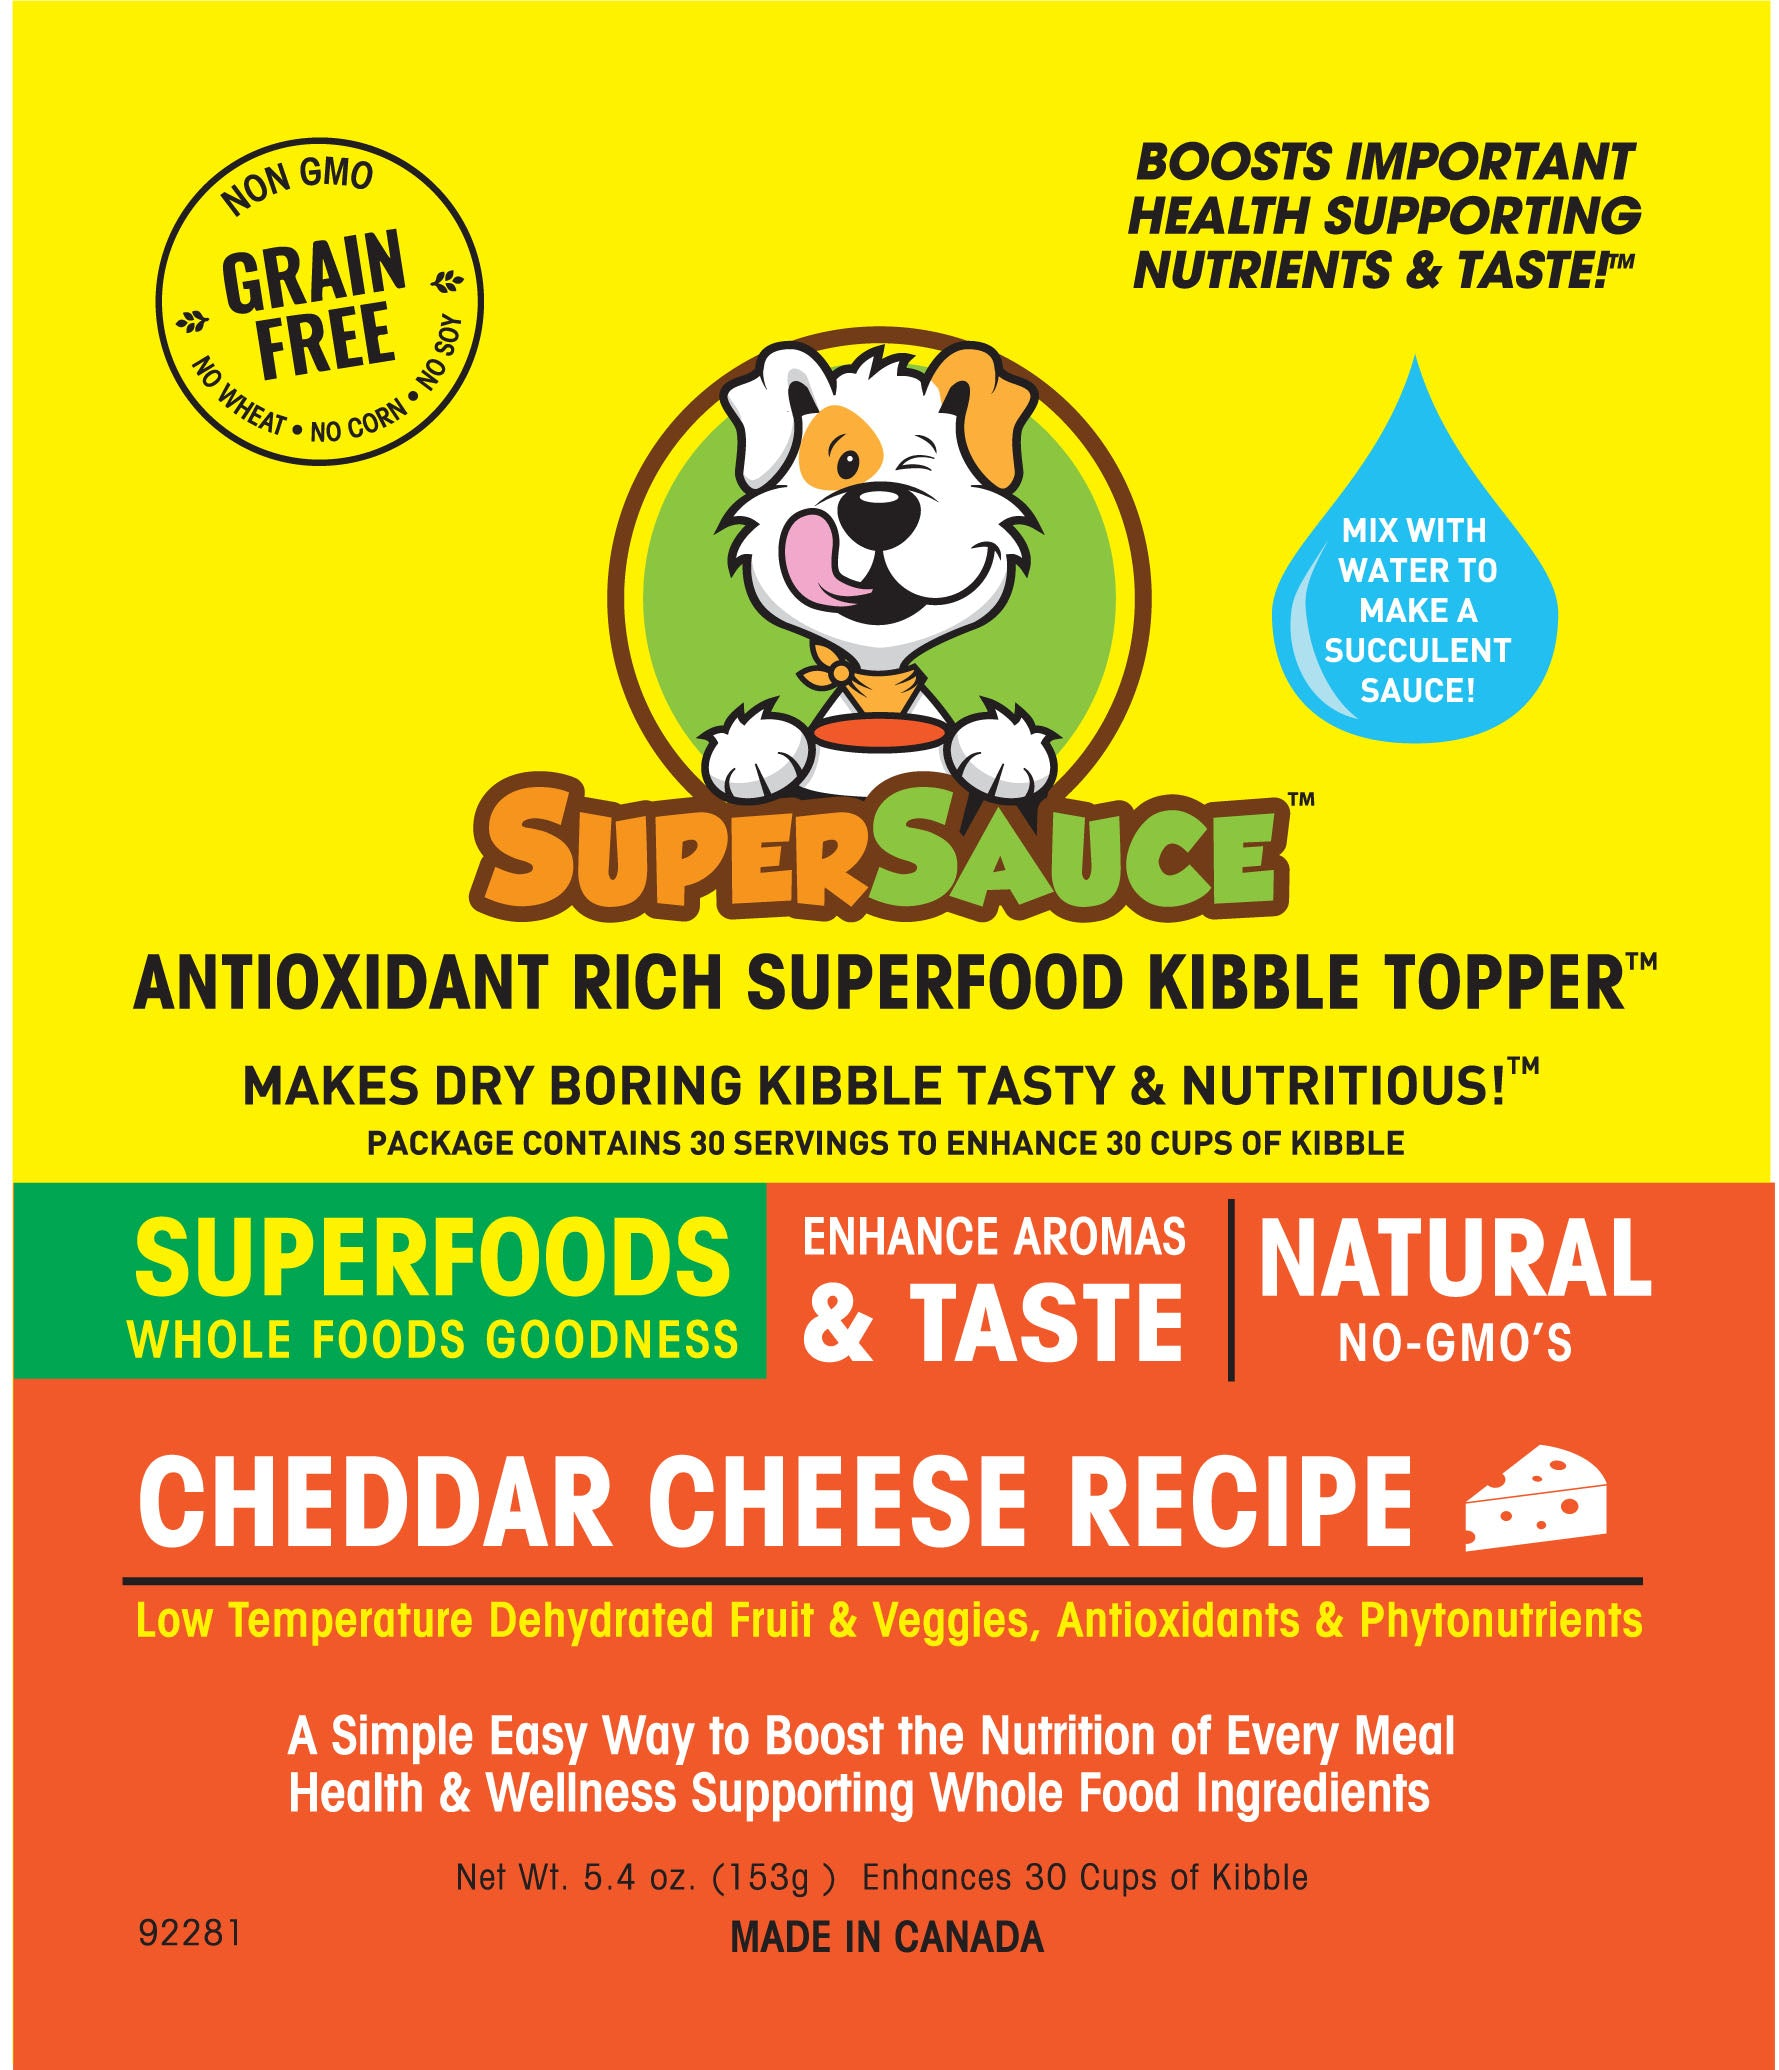 SUPERSAUCE™ White Cheddar Cheese  + SUPERFOODS 5.4 oz. (153g) MADE IN CANADA				New Product - Please enter name here